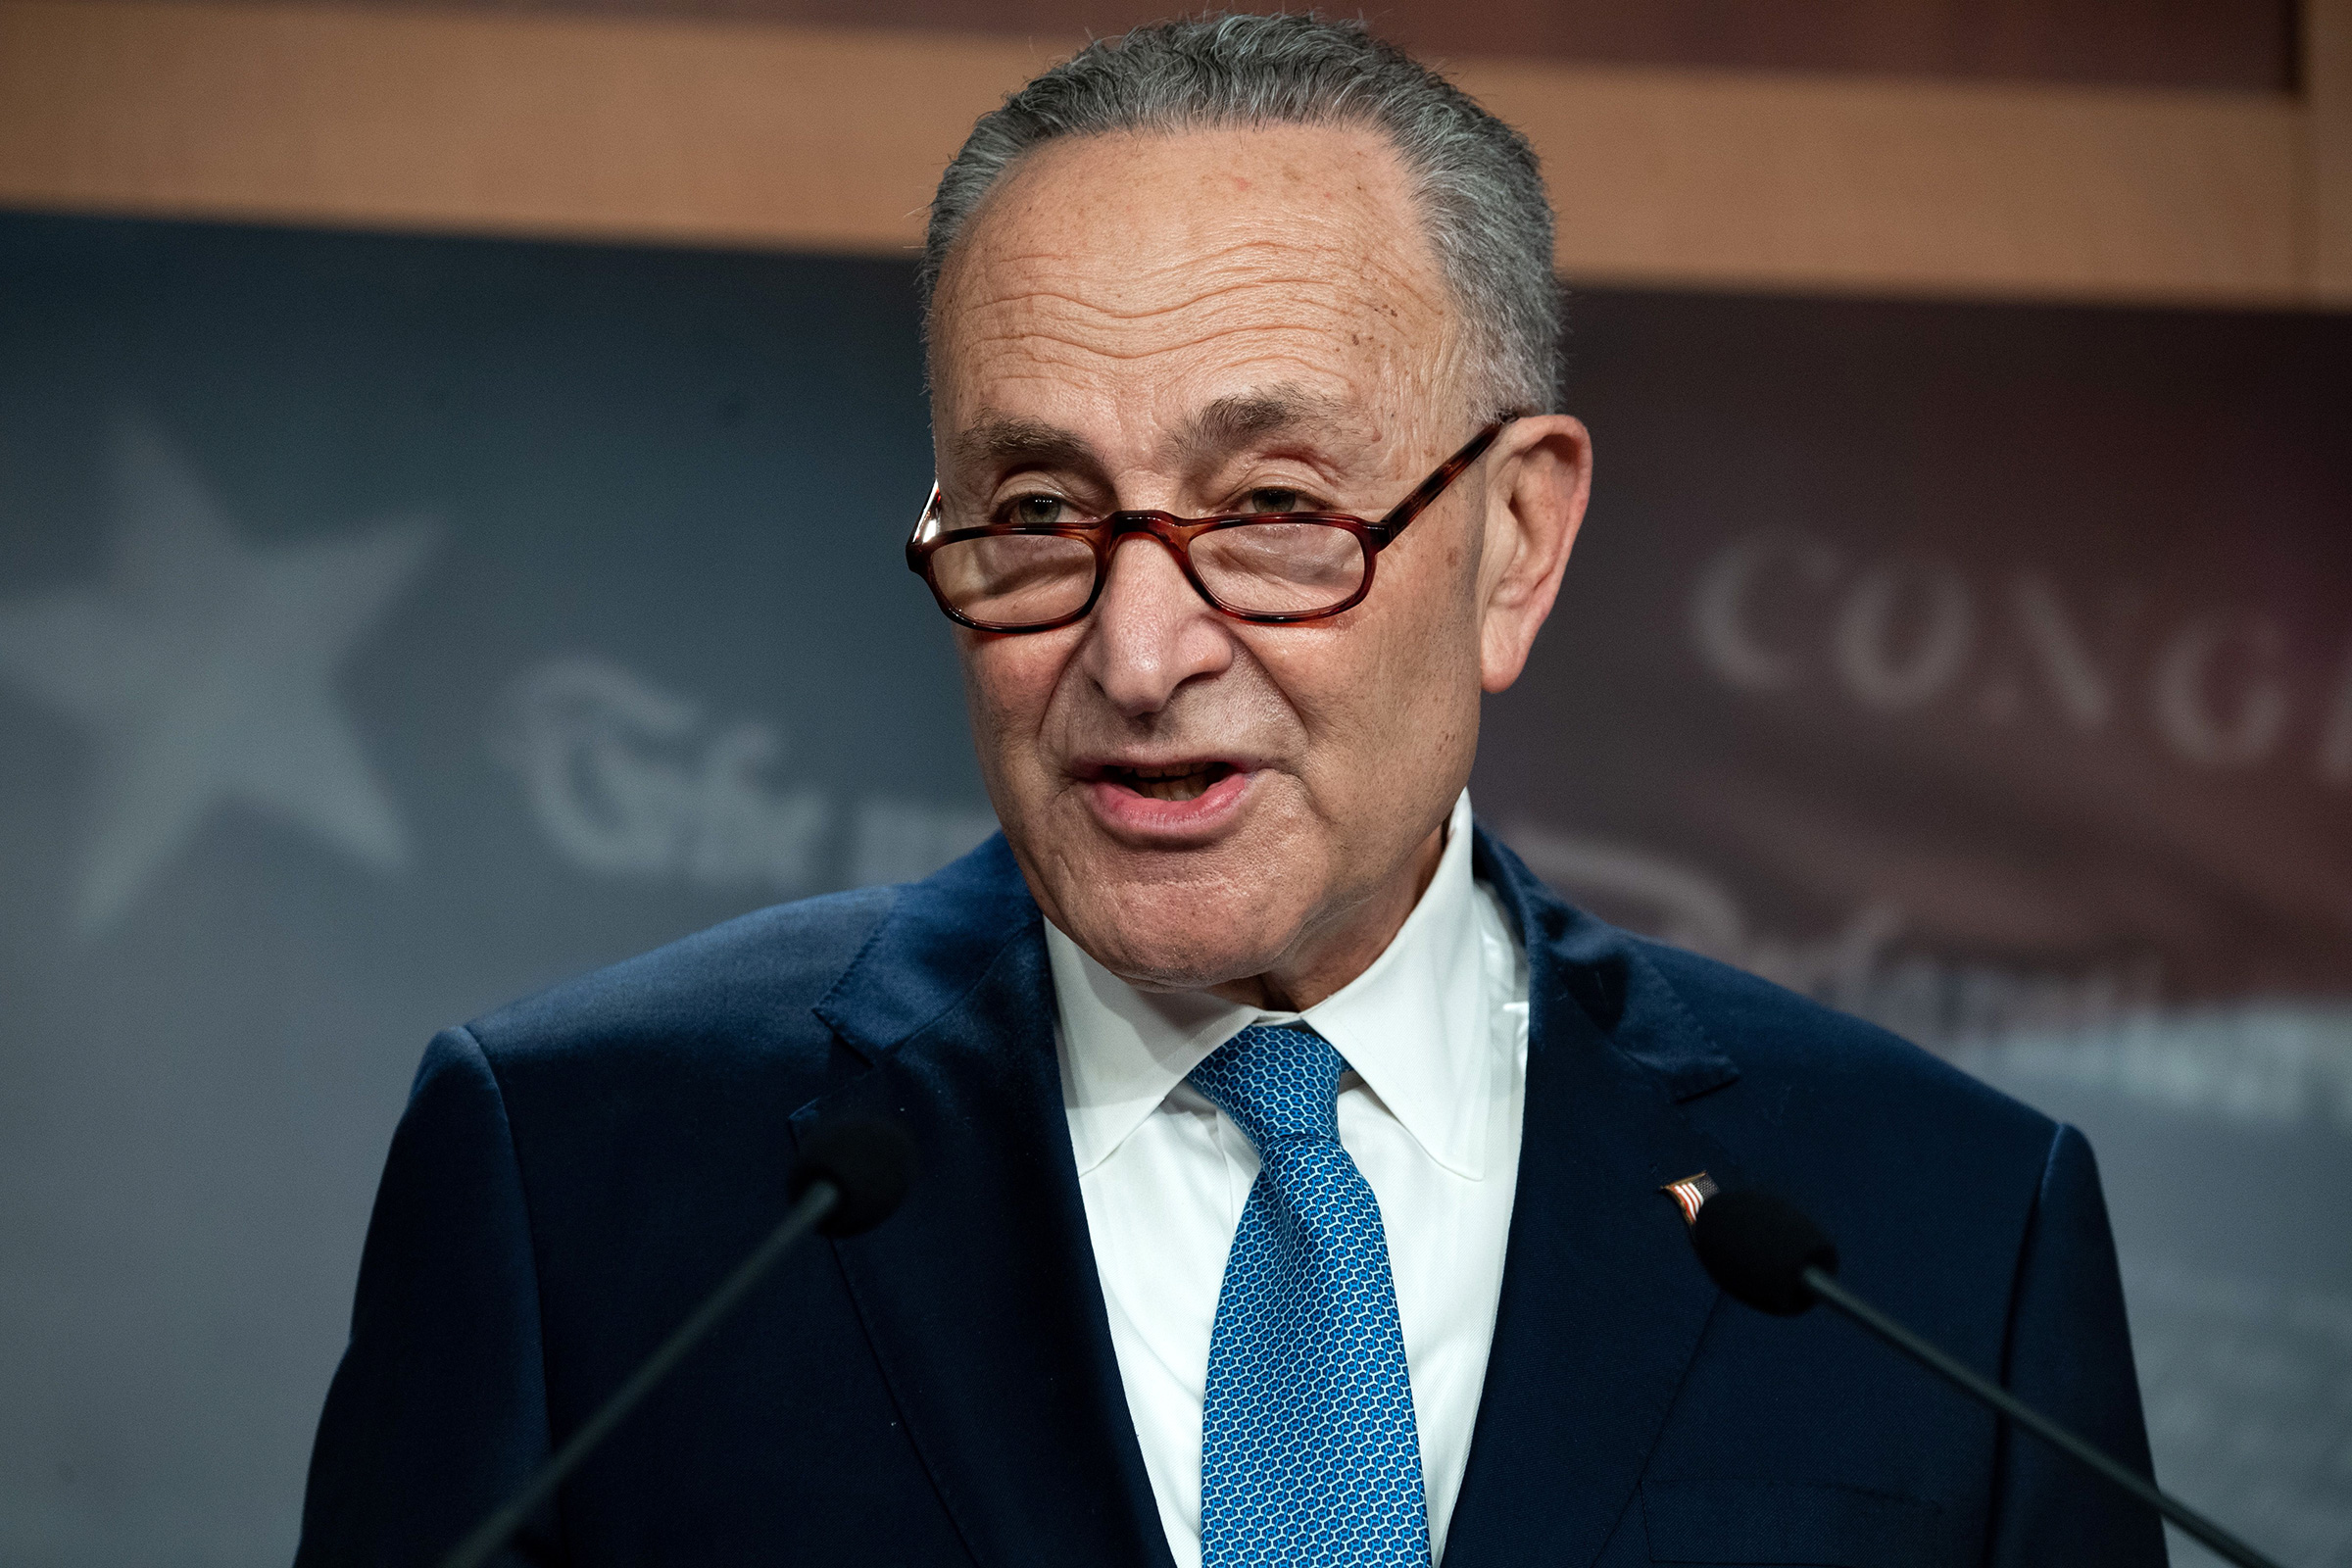 Senate Minority Leader Chuck Schumer speaks during a press conference in Washington, DC, on January 6.